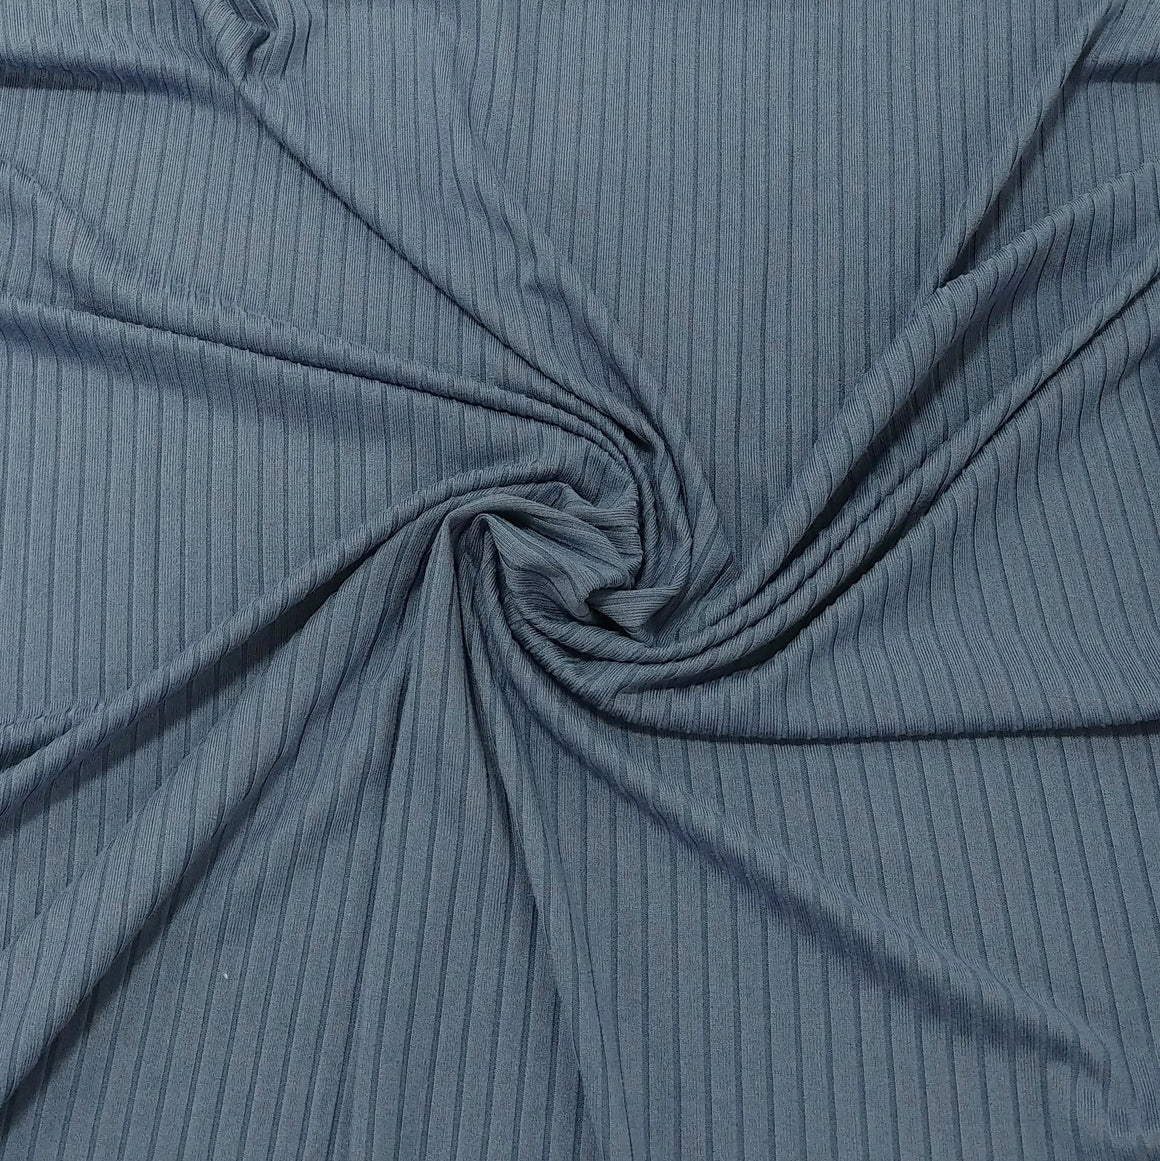 Solid Cornflower Blue Poly Spandex 4 Way Stretch 8x3 Rib Knit - Raspberry Creek Fabrics